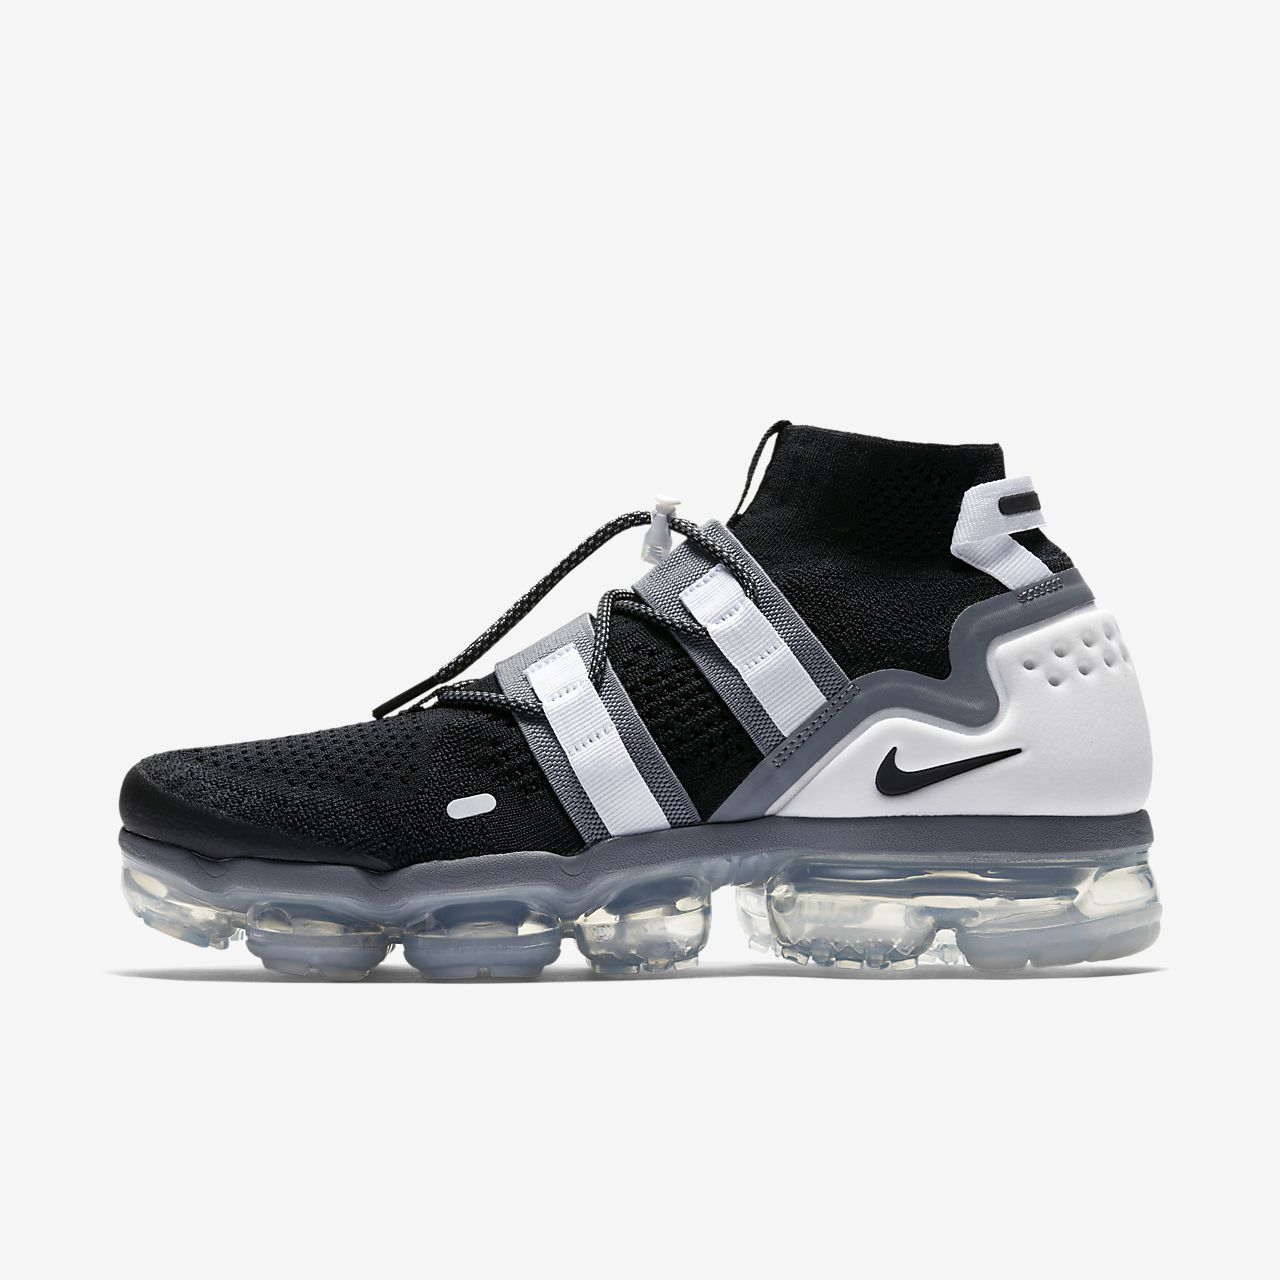 on sale 08660 ca575 ... Chaussure Nike Air VaporMax Flyknit Utility